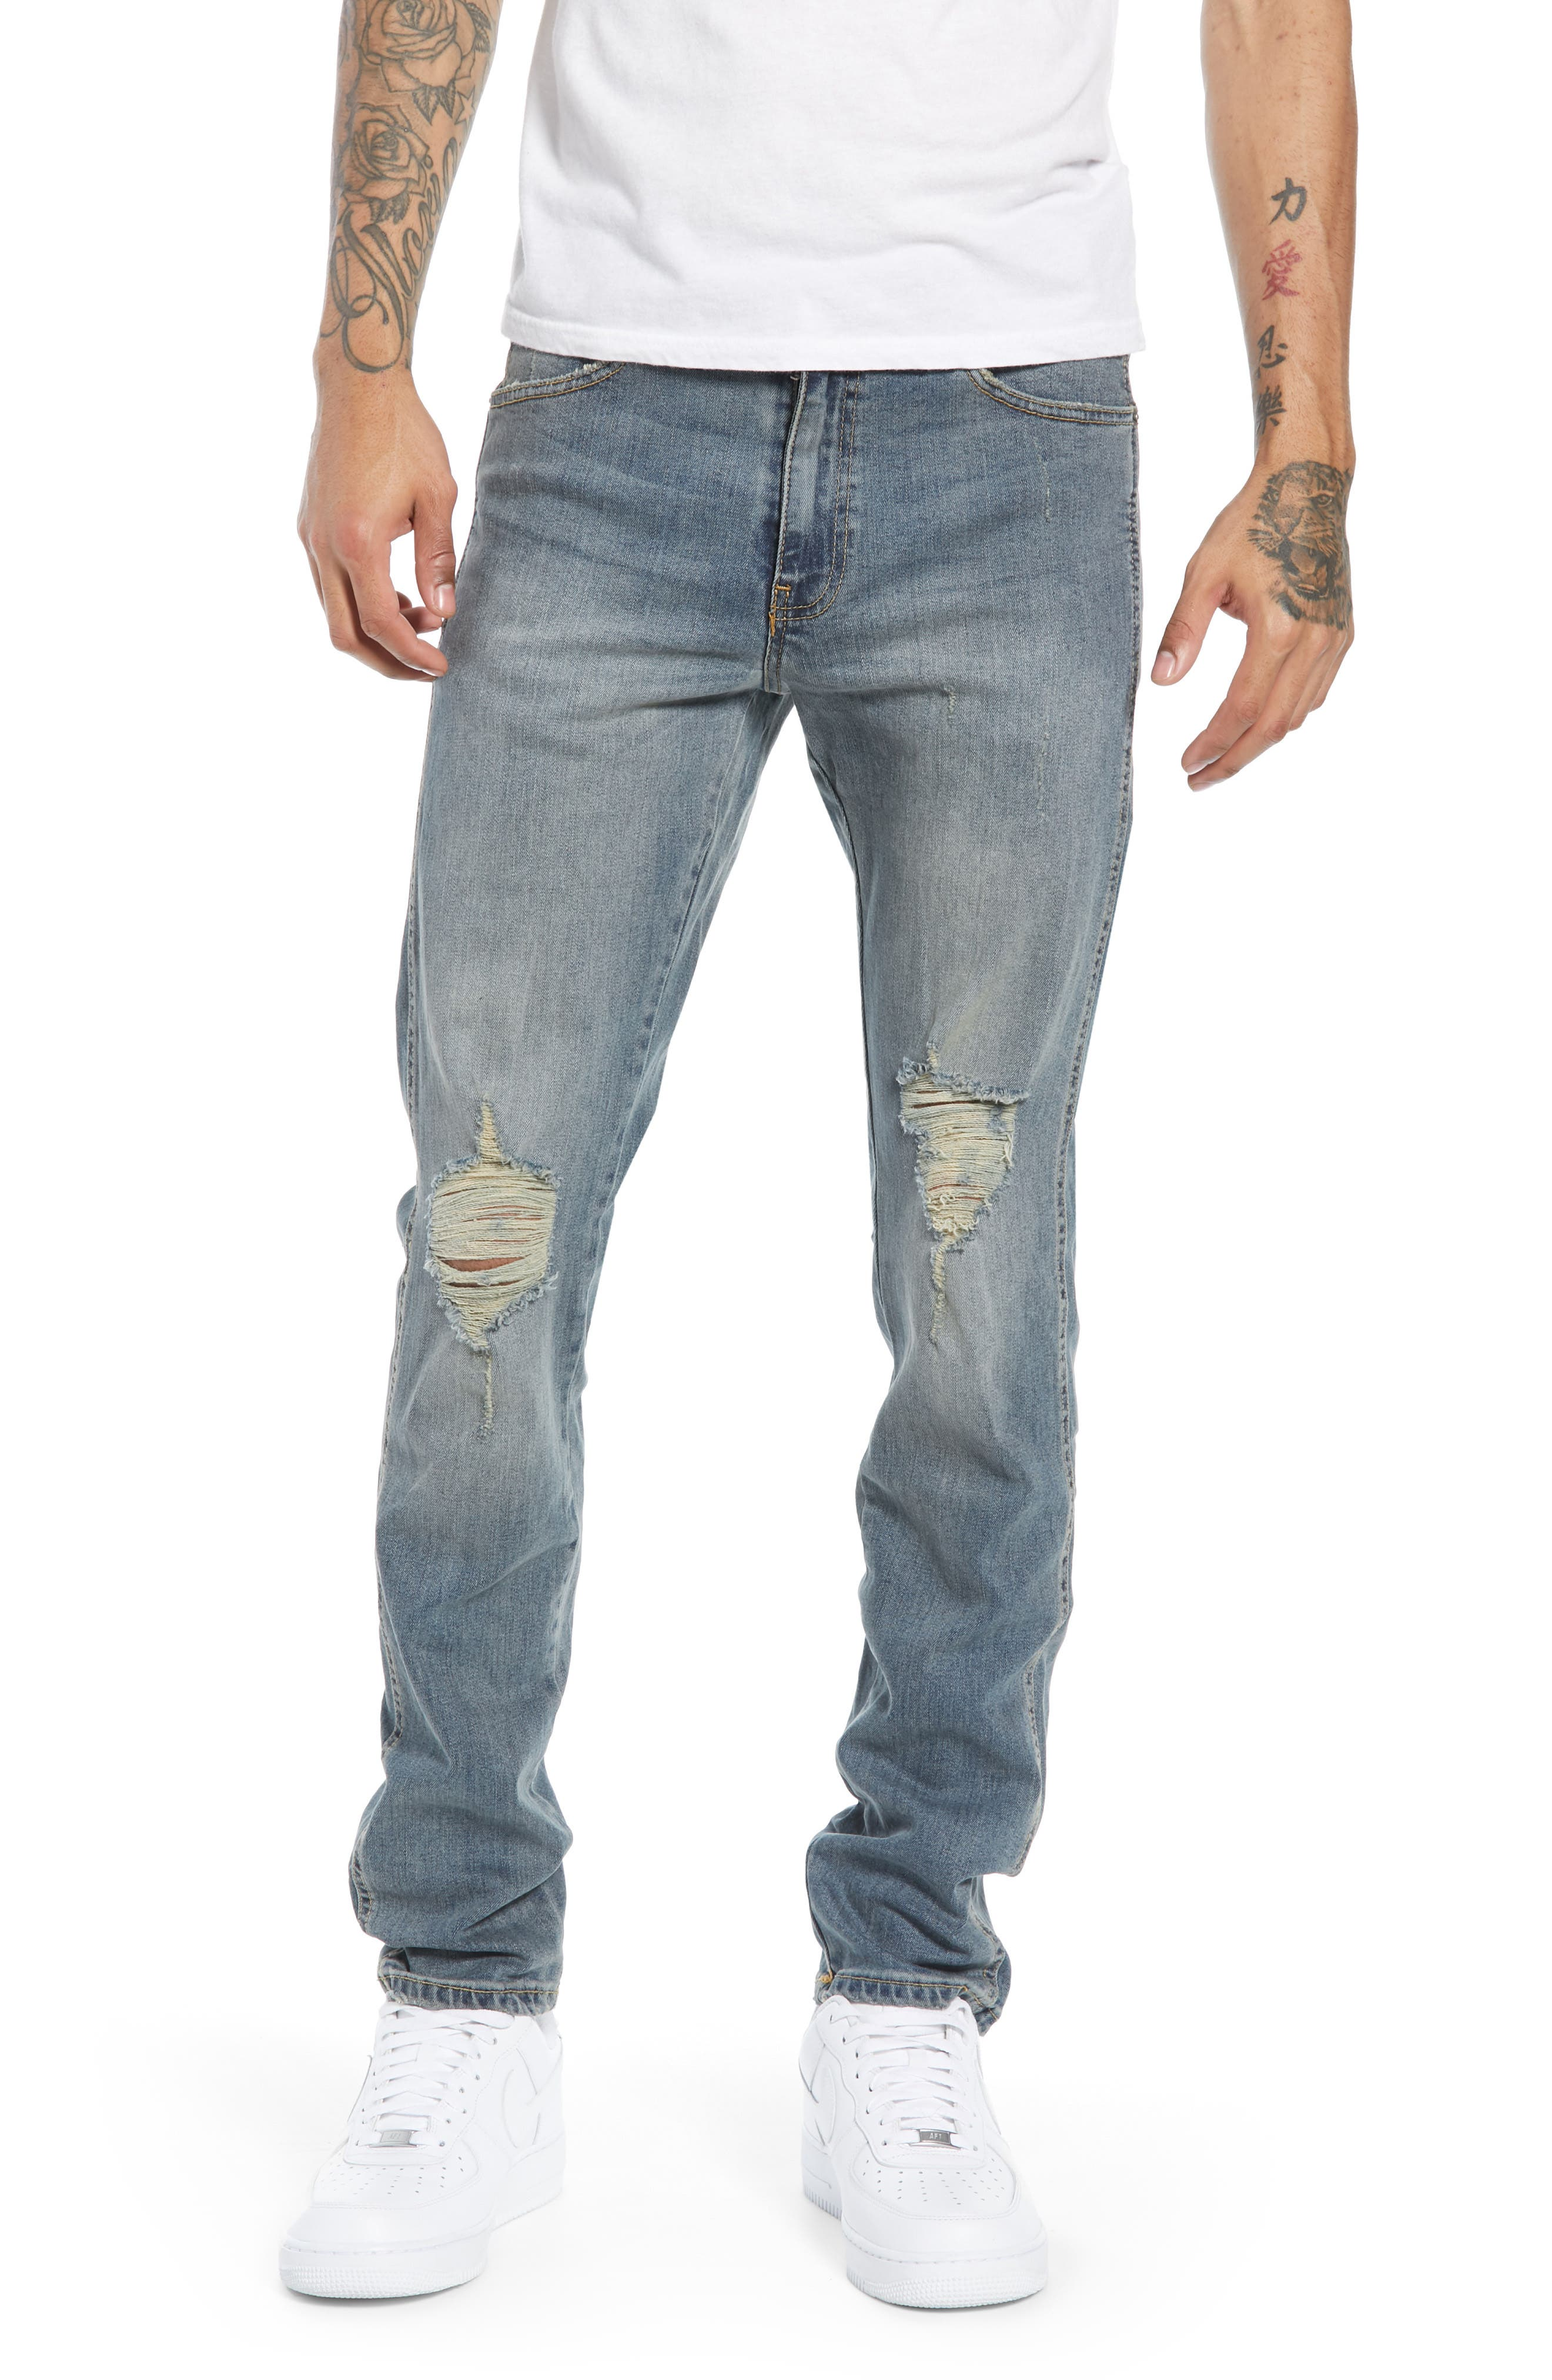 Snap Skinny Fit Jeans,                             Main thumbnail 1, color,                             LIGHT OLD DESTROY